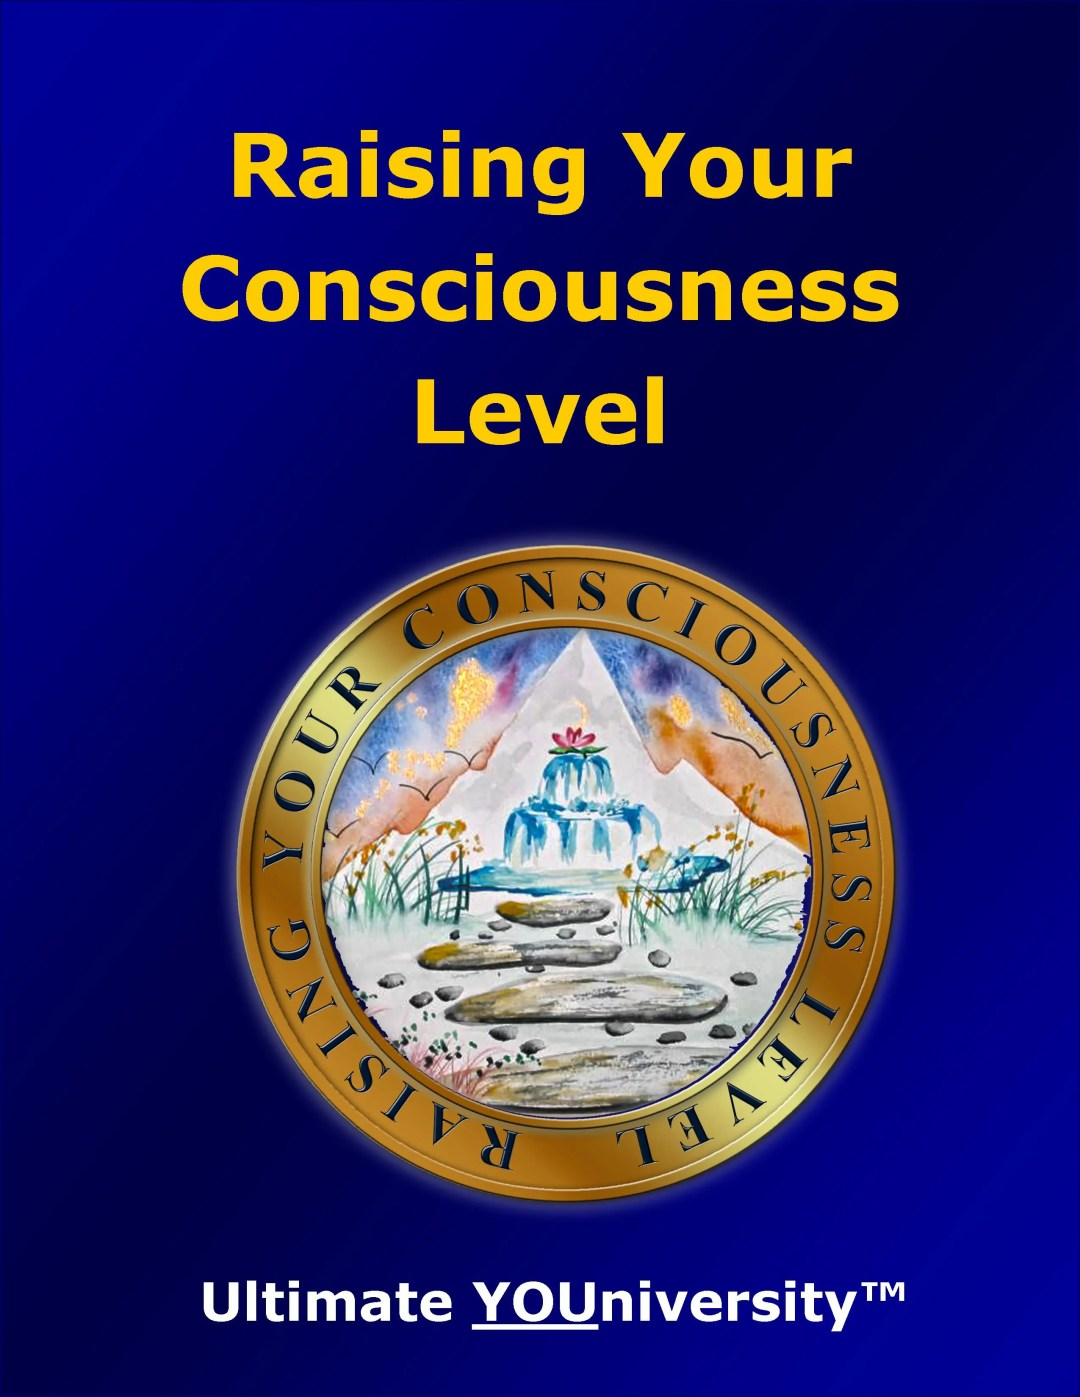 Raising Your Consciousness Level, one of the 14 Categories